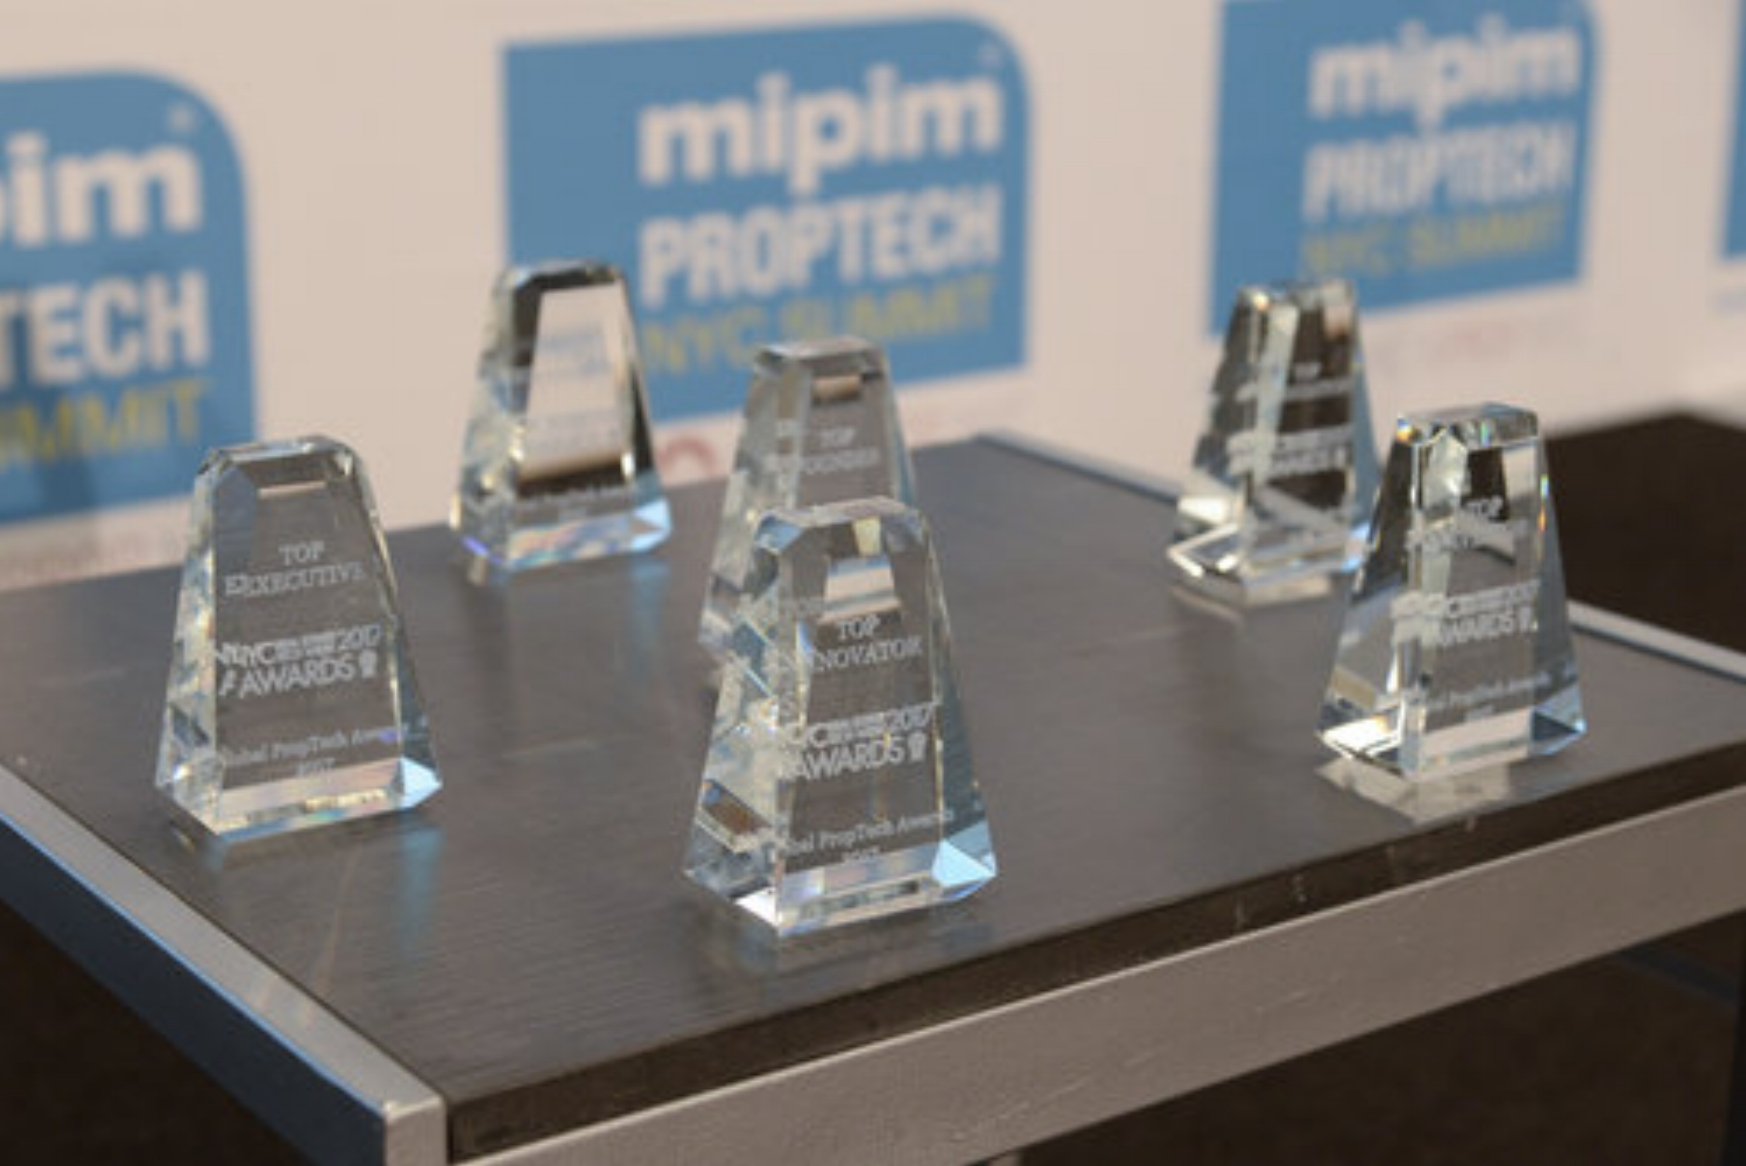 Global+PropTech+Awards+2017+Trophies.jpg